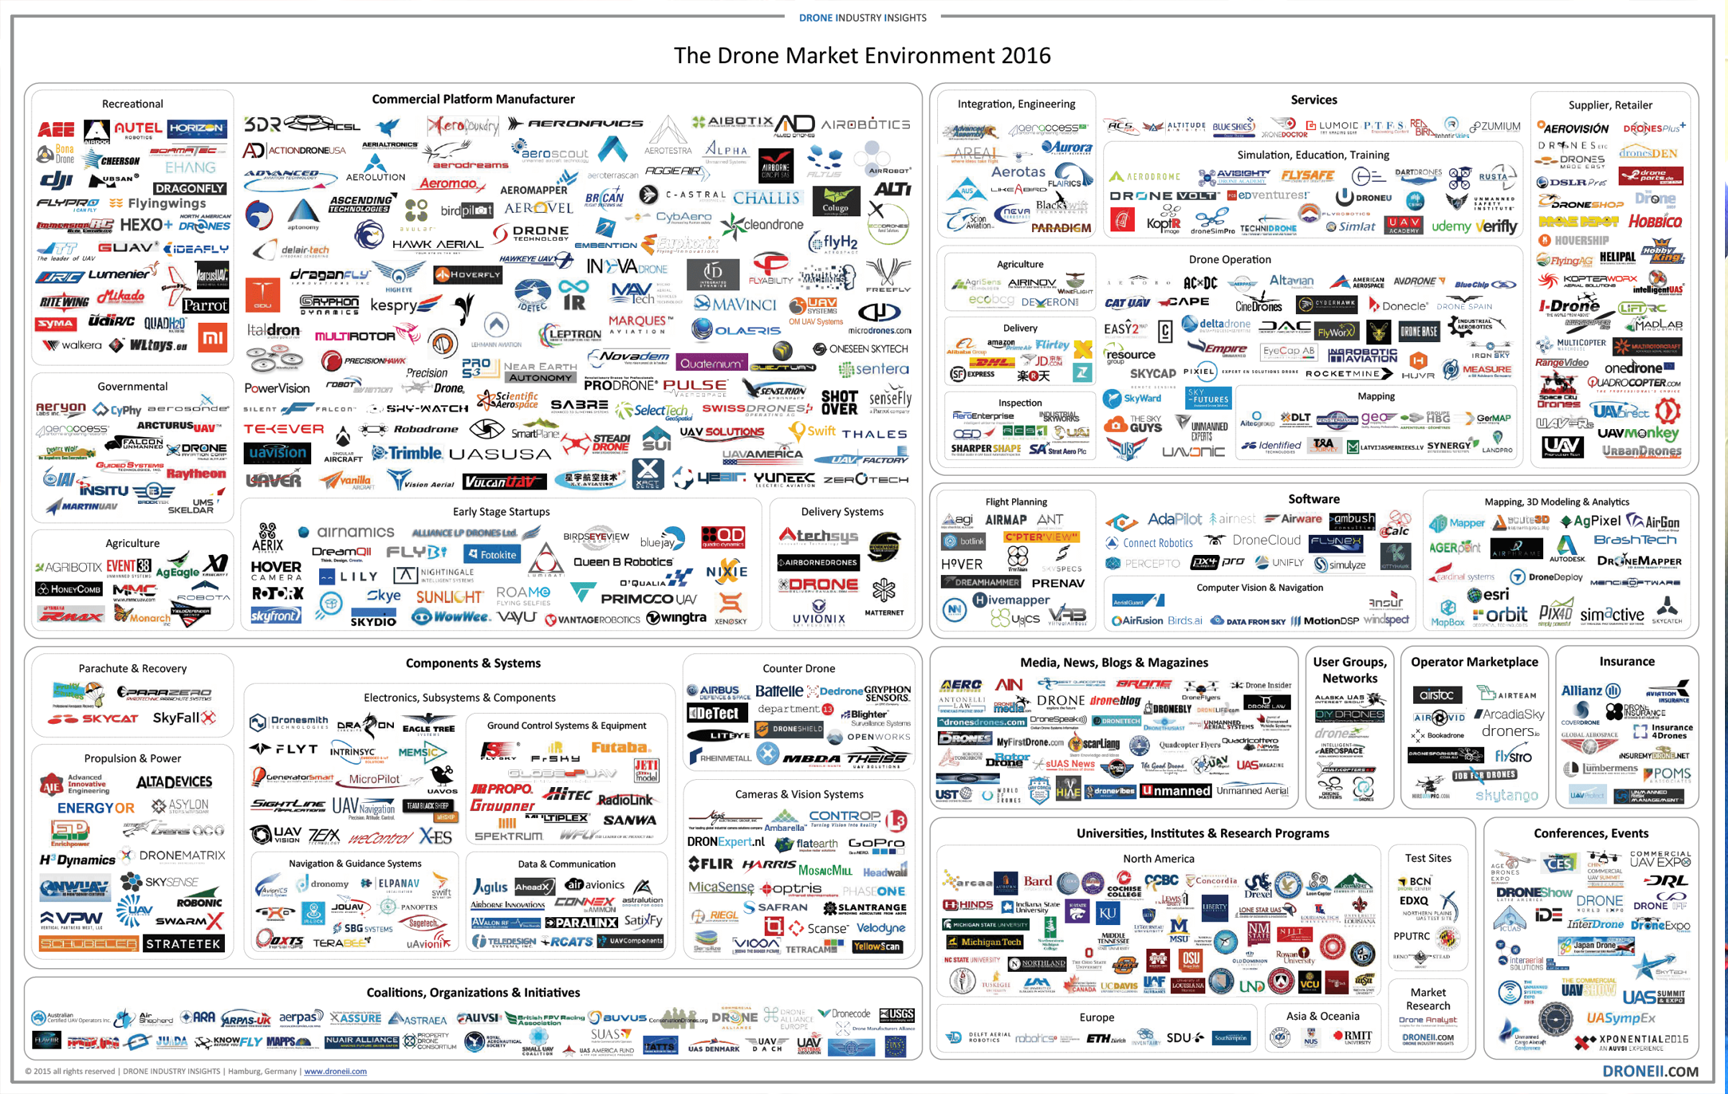 Recognition for AIE in Droneii Market Map 2016